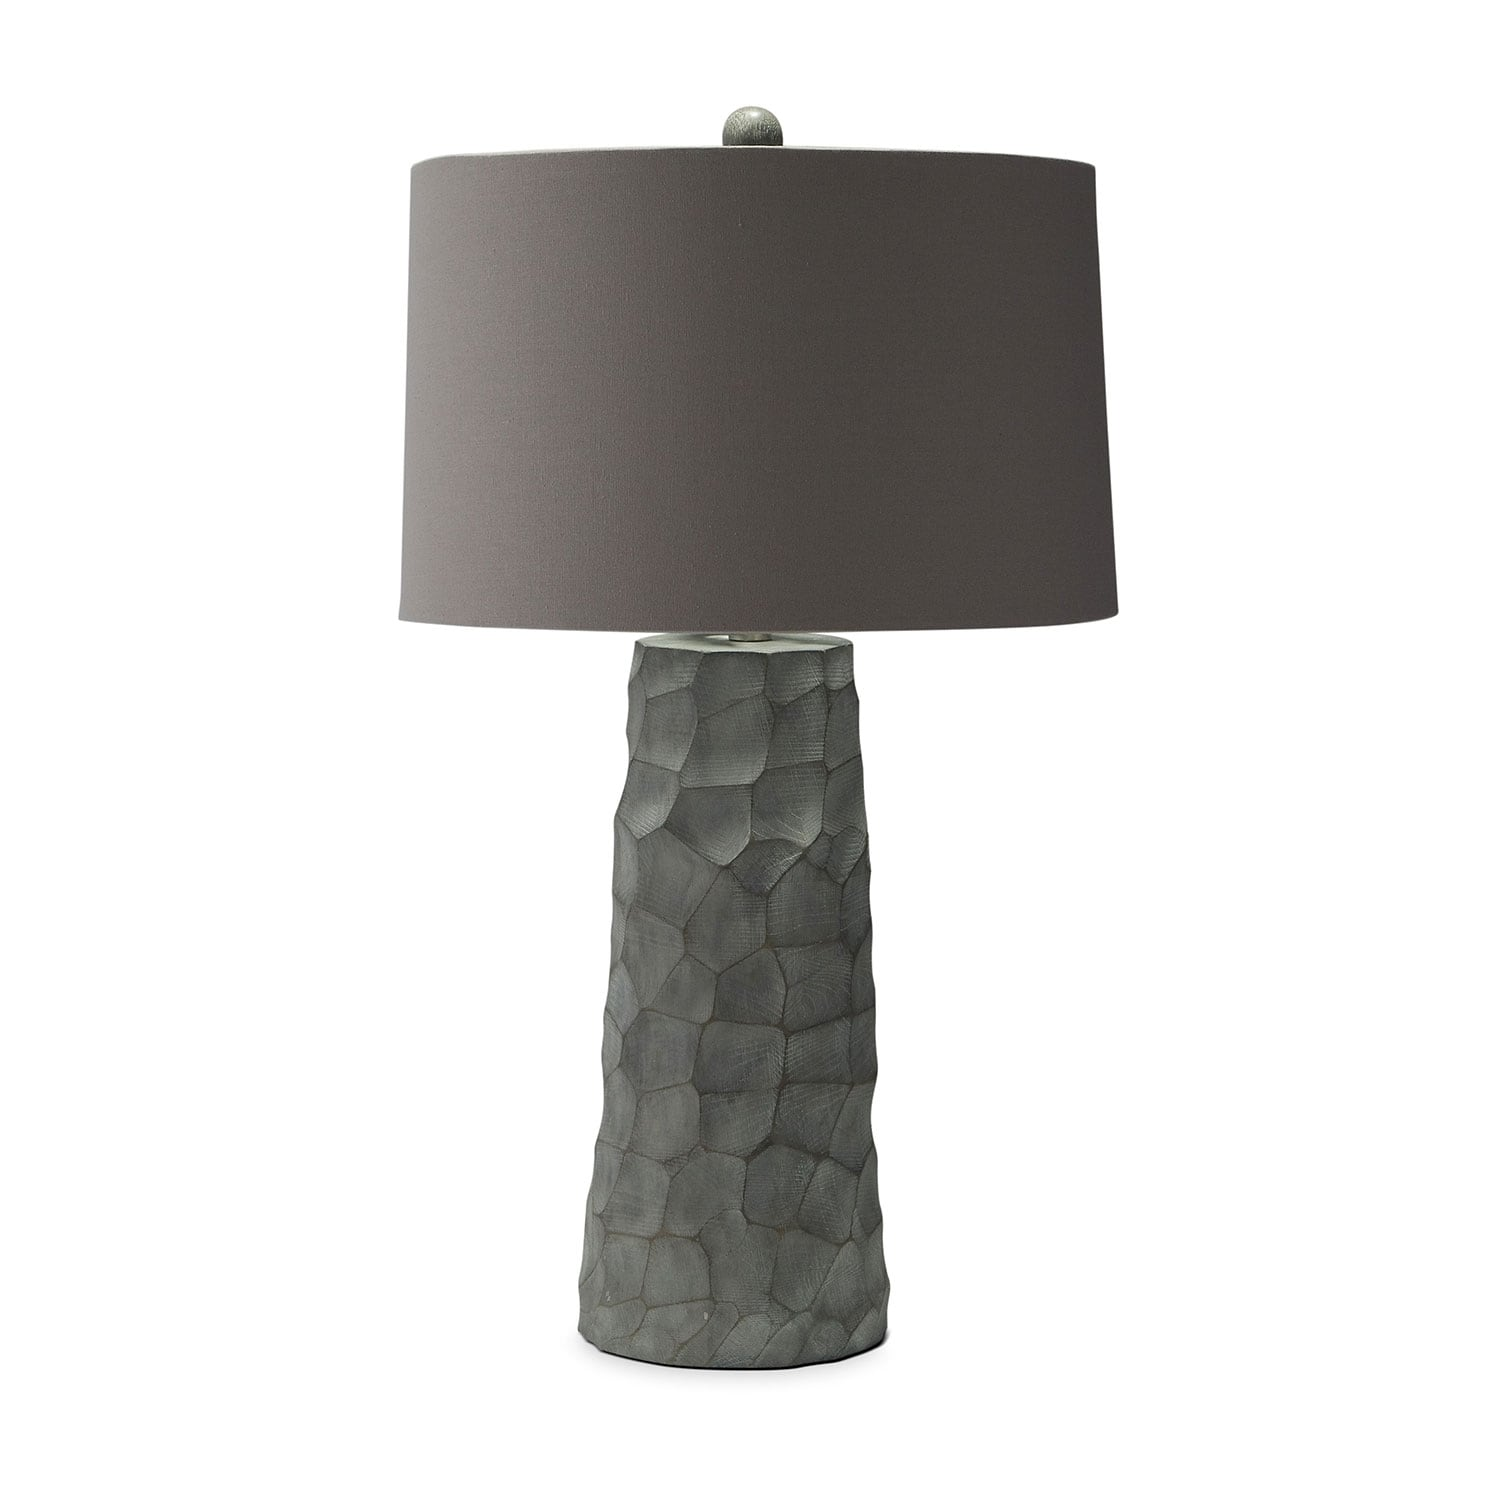 Thumbprint Table Lamp